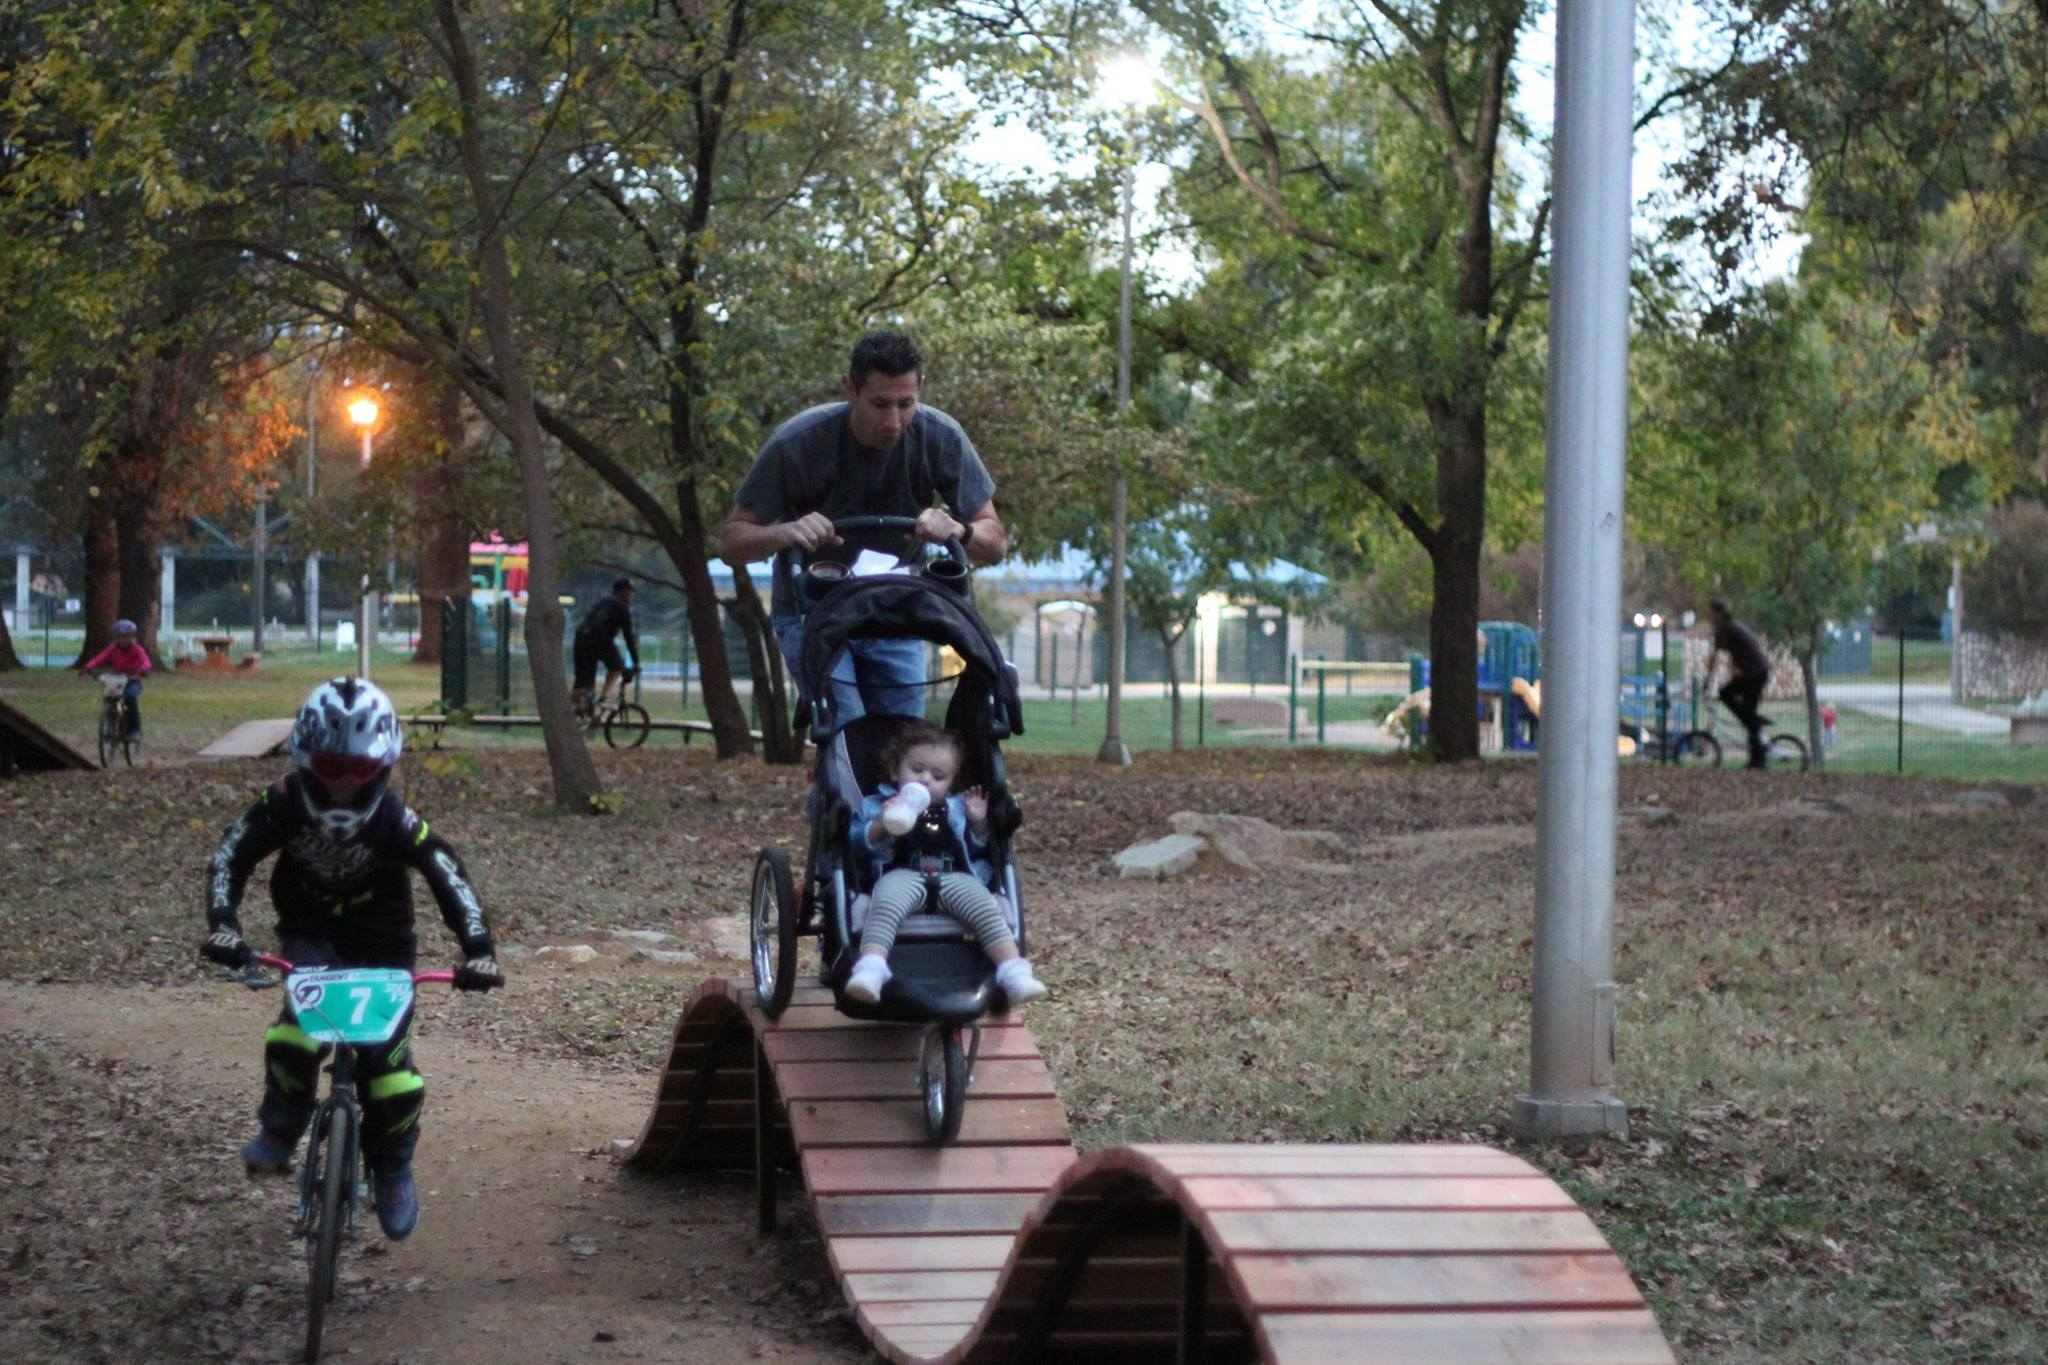 Redding Trail Alliance board member Mike Ruffell was creative in his use of the parks features.